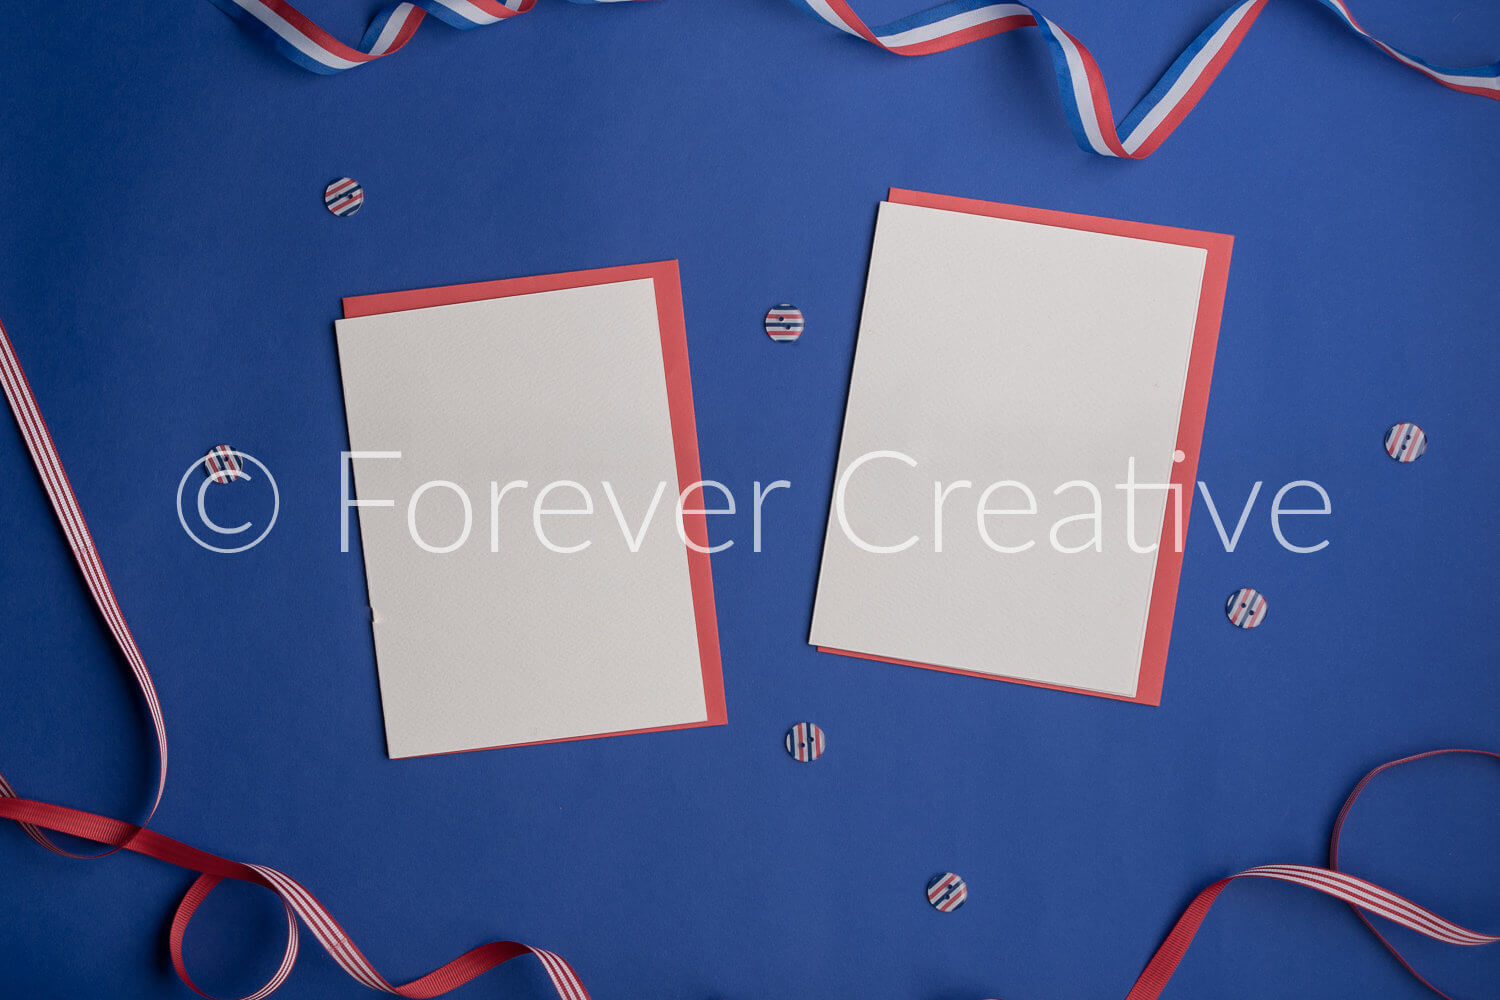 Stock photography produced for greetings card designers